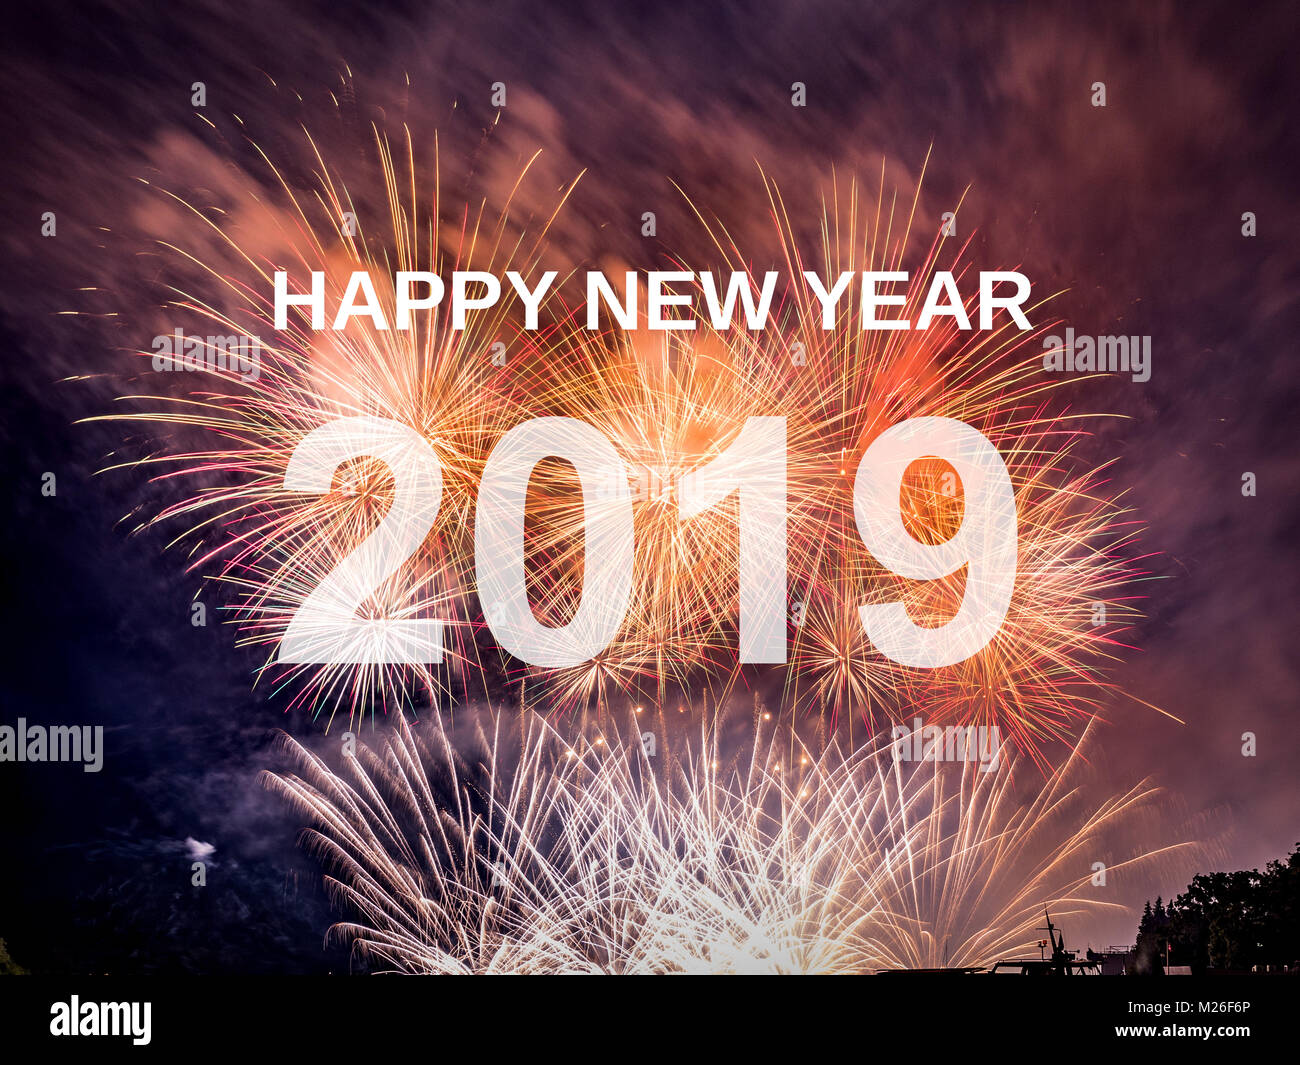 happy new year 2019 with fireworks background celebration new year stock photo 173476654 alamy. Black Bedroom Furniture Sets. Home Design Ideas